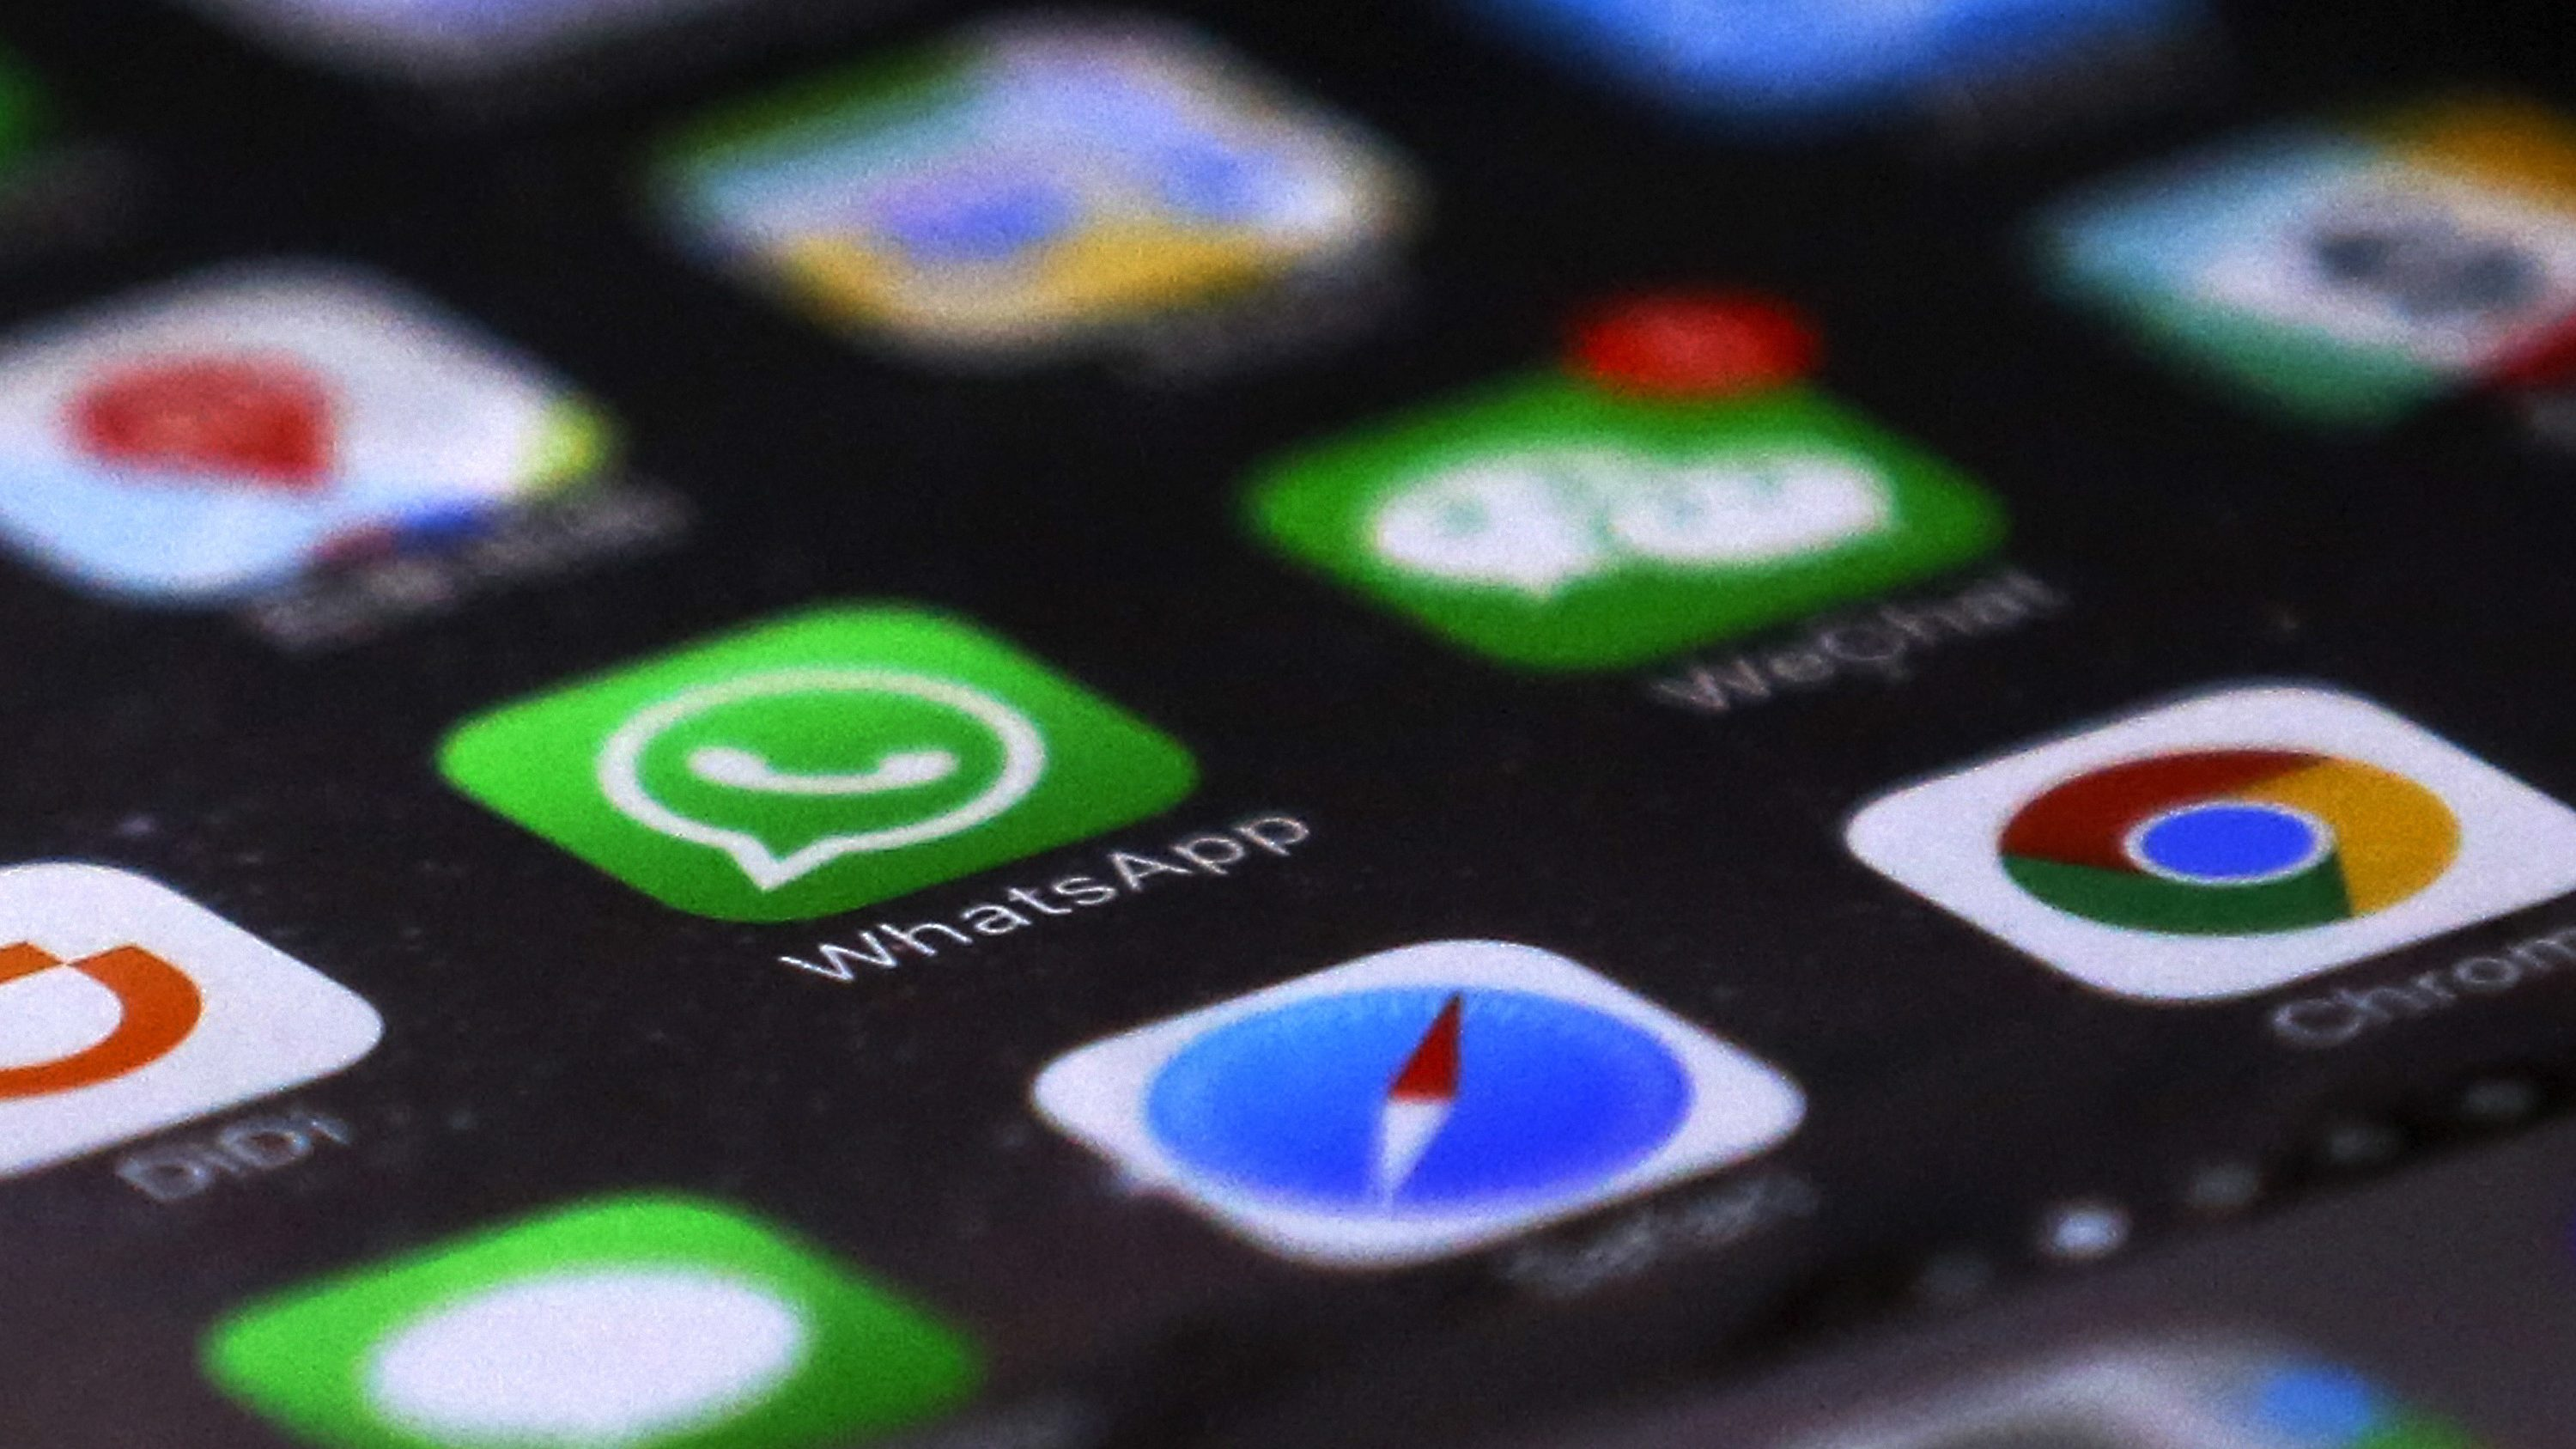 WhatsApp is seen with other mobile apps on a smartphone in Beijing, Tuesday, July 18, 2017. Users of WhatsApp in China and security researchers reported Tuesday widespread service disruptions amid fears that the popular messaging service may be at least partially blocked by authorities in the world's most populous country. The app was partly inaccessible unless virtual private network software was used to circumvent China's censorship apparatus, known colloquially as The Great Firewall.